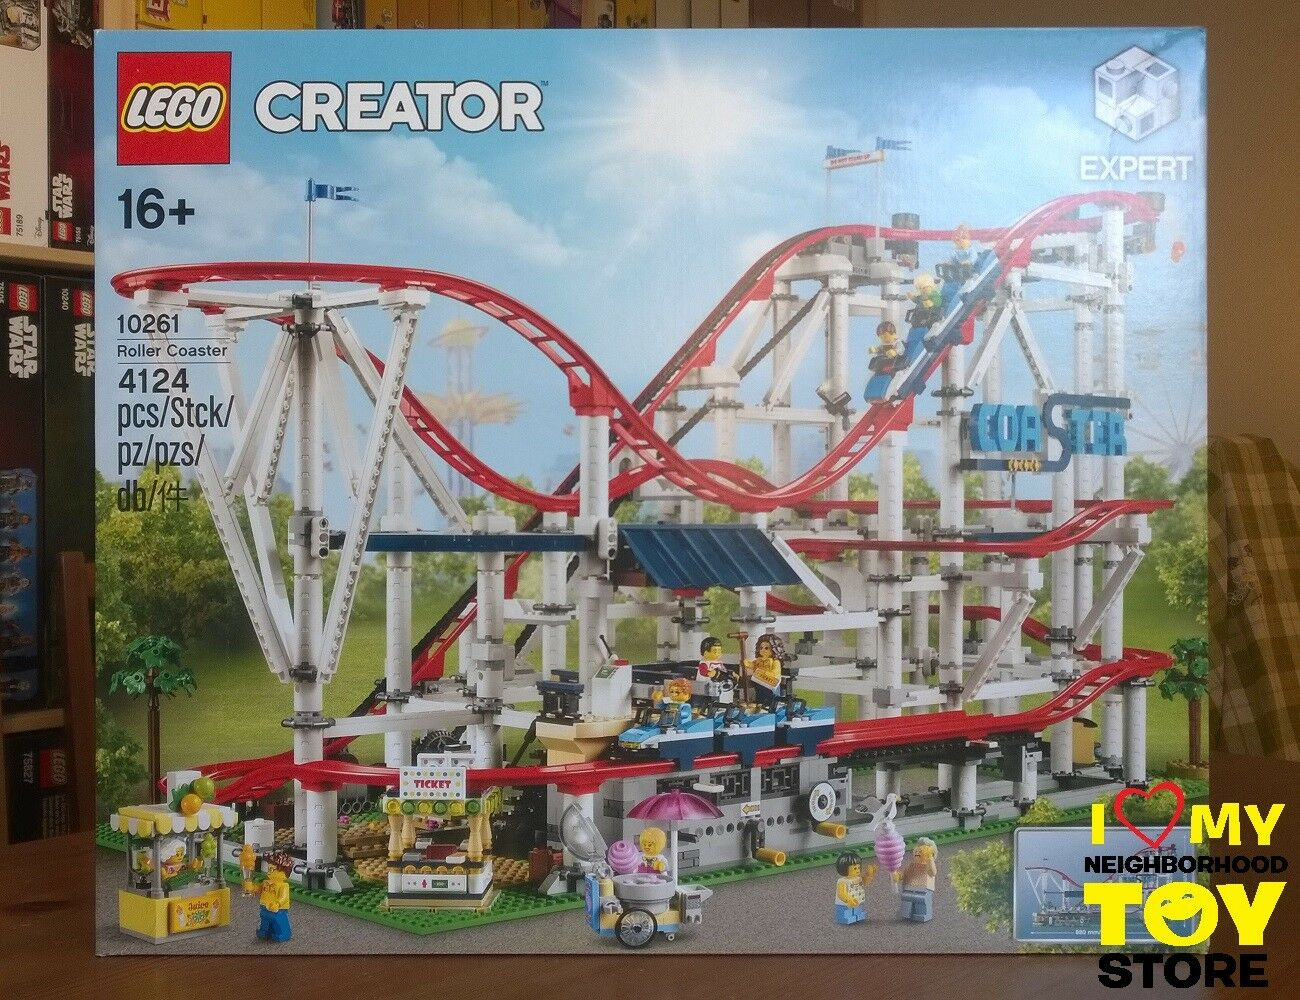 IN STOCK - LEGO 10261 CREATOR EXPERT MONTAGNE RUSSE ROLLER COASTER (2018) - MISB